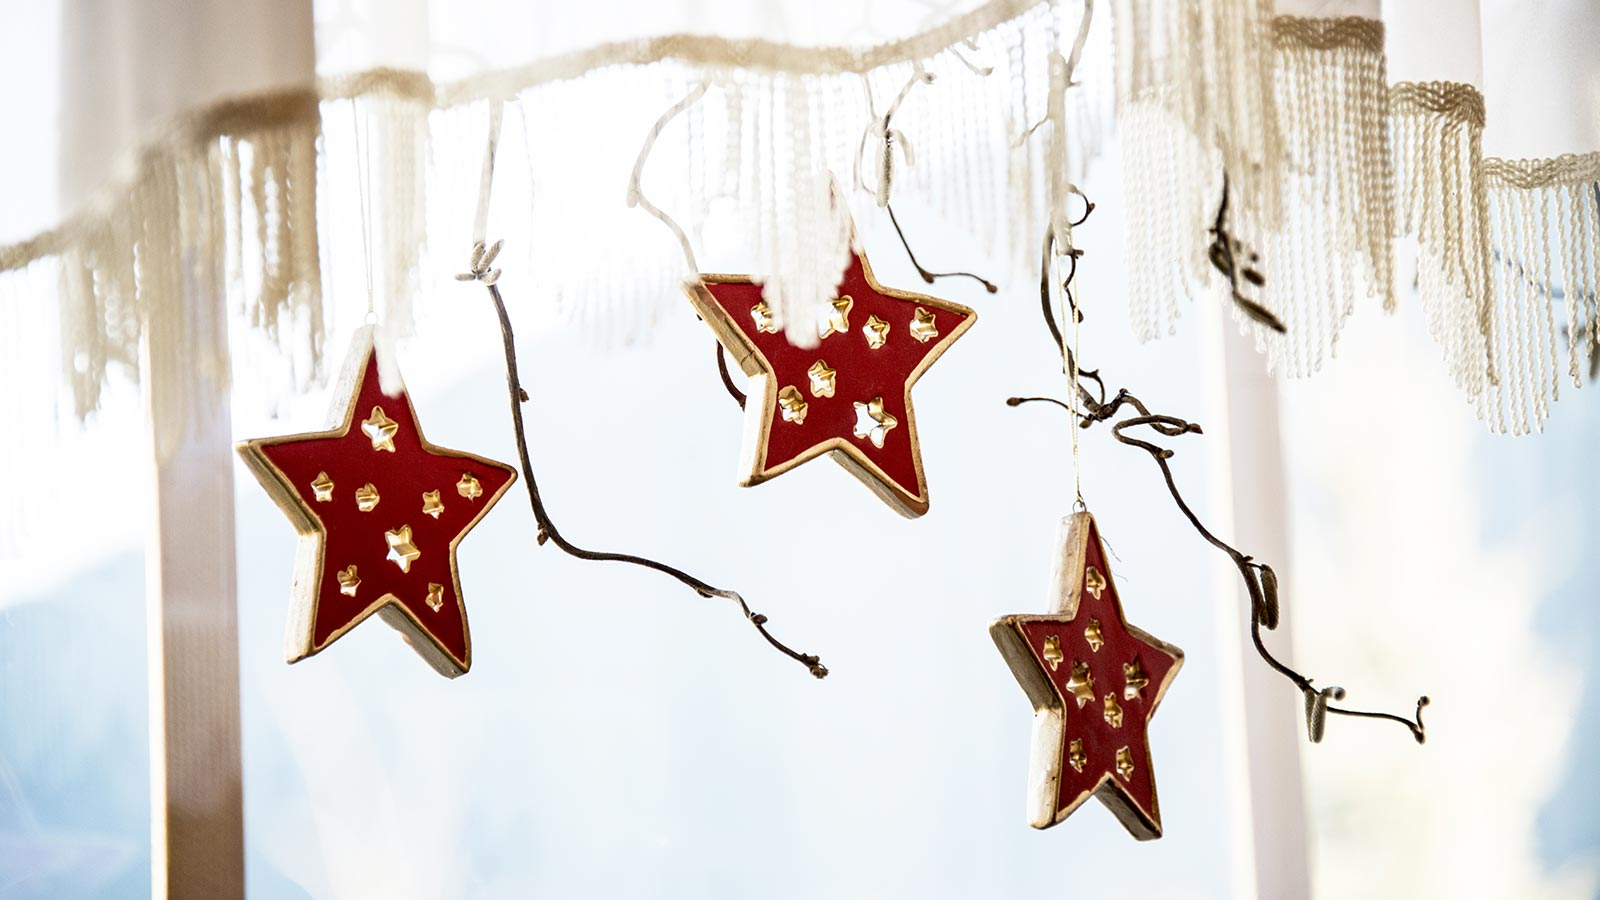 Three red Christmas stars hanging from a branch at our accommodation in Val Casies